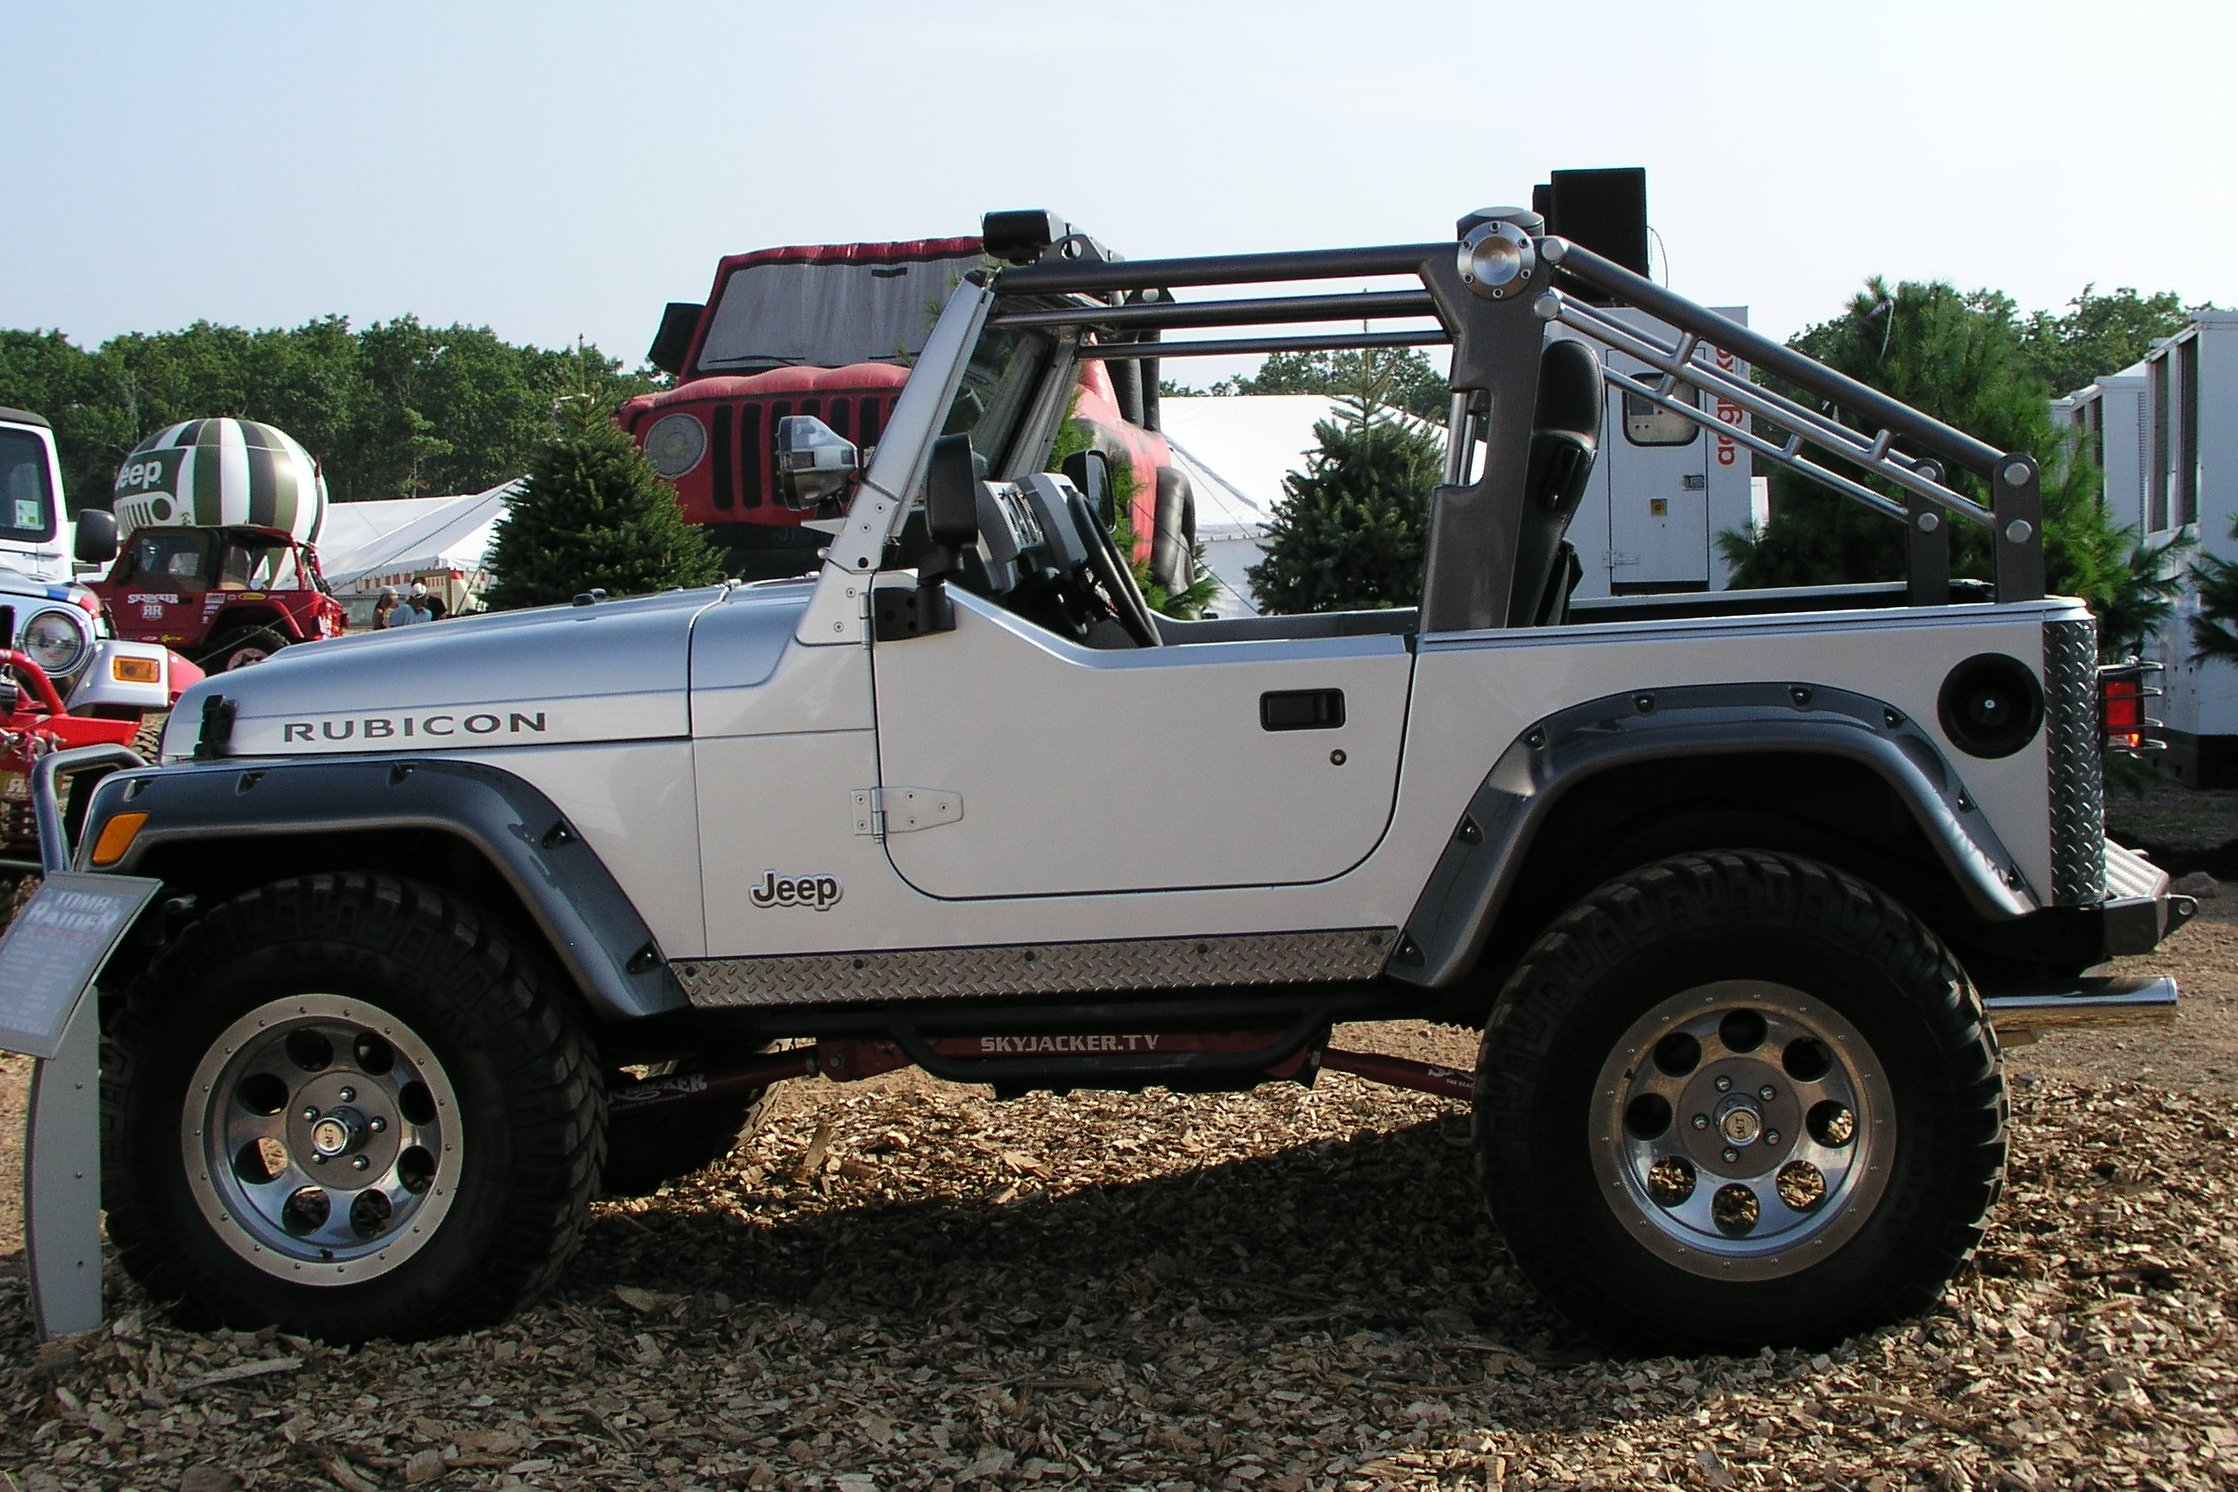 Tomb Raider Jeep Wrangler | Flickr - Photo Sharing!